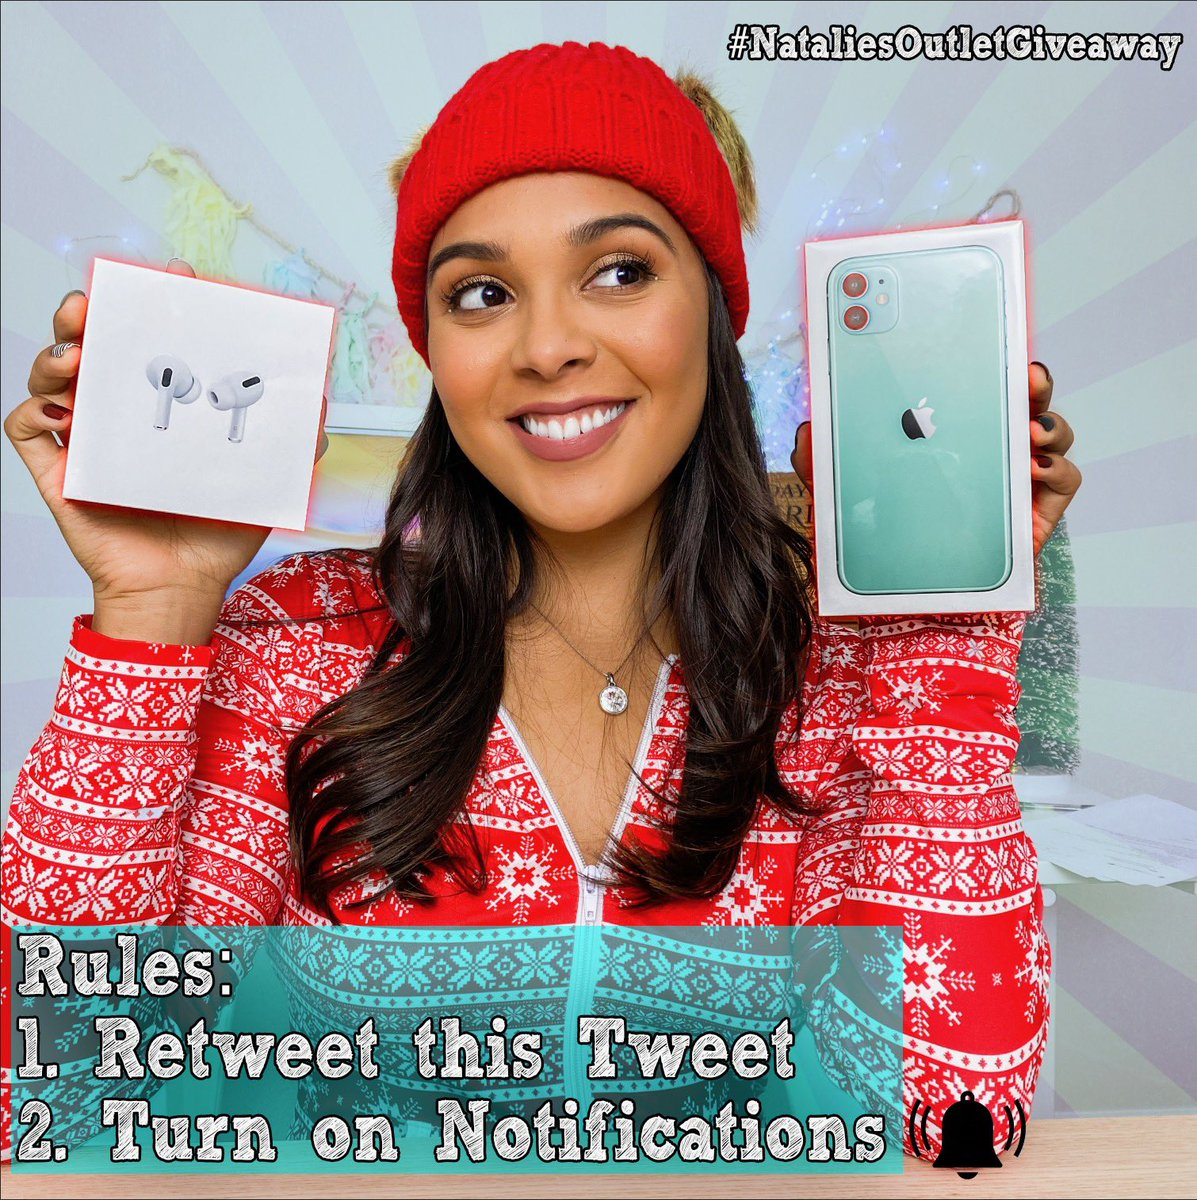 ✨GIVEAWAY✨Just RT & turn on notifications and you're in!❄️ happy holidays to my twitter fam!🎄 #NataliesOutletGiveaway